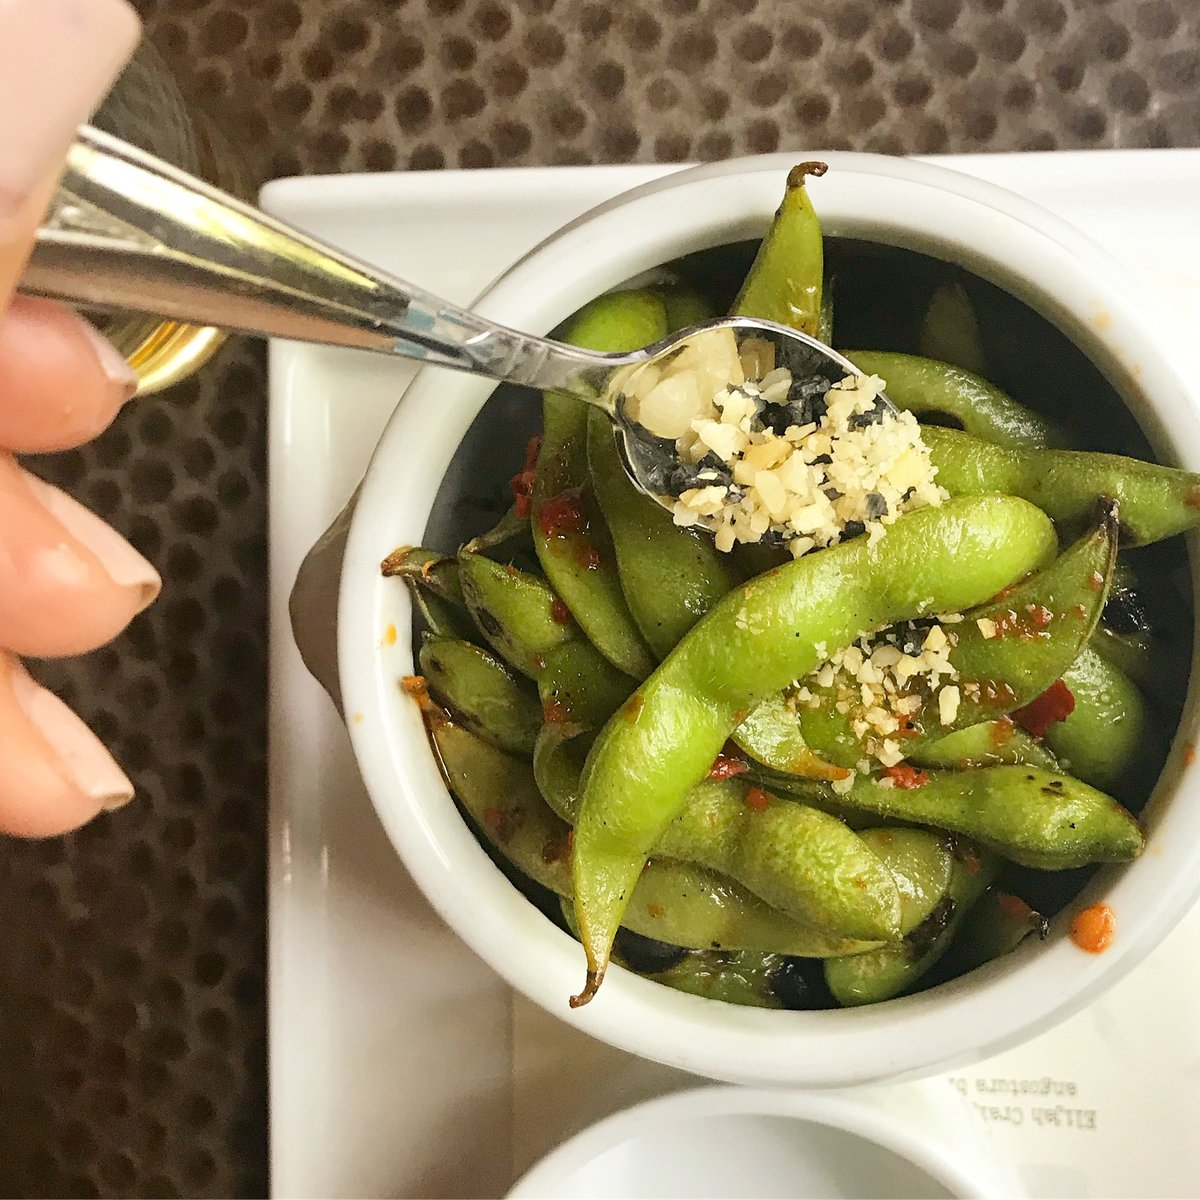 The grown up (& healthier) version of Pop Rocks . Charred Edamame with Chile Oil & Pop Rock. #swiftsattic #eatswiftly #farmtotable #edamame #eateratx #opentable #eatyourveggies #opentable #atxbesteats #culturemapatx #texasmonthly #dineatx #365thingsaustin #atxfoodie #poprockspic.twitter.com/taPkt1JLDP